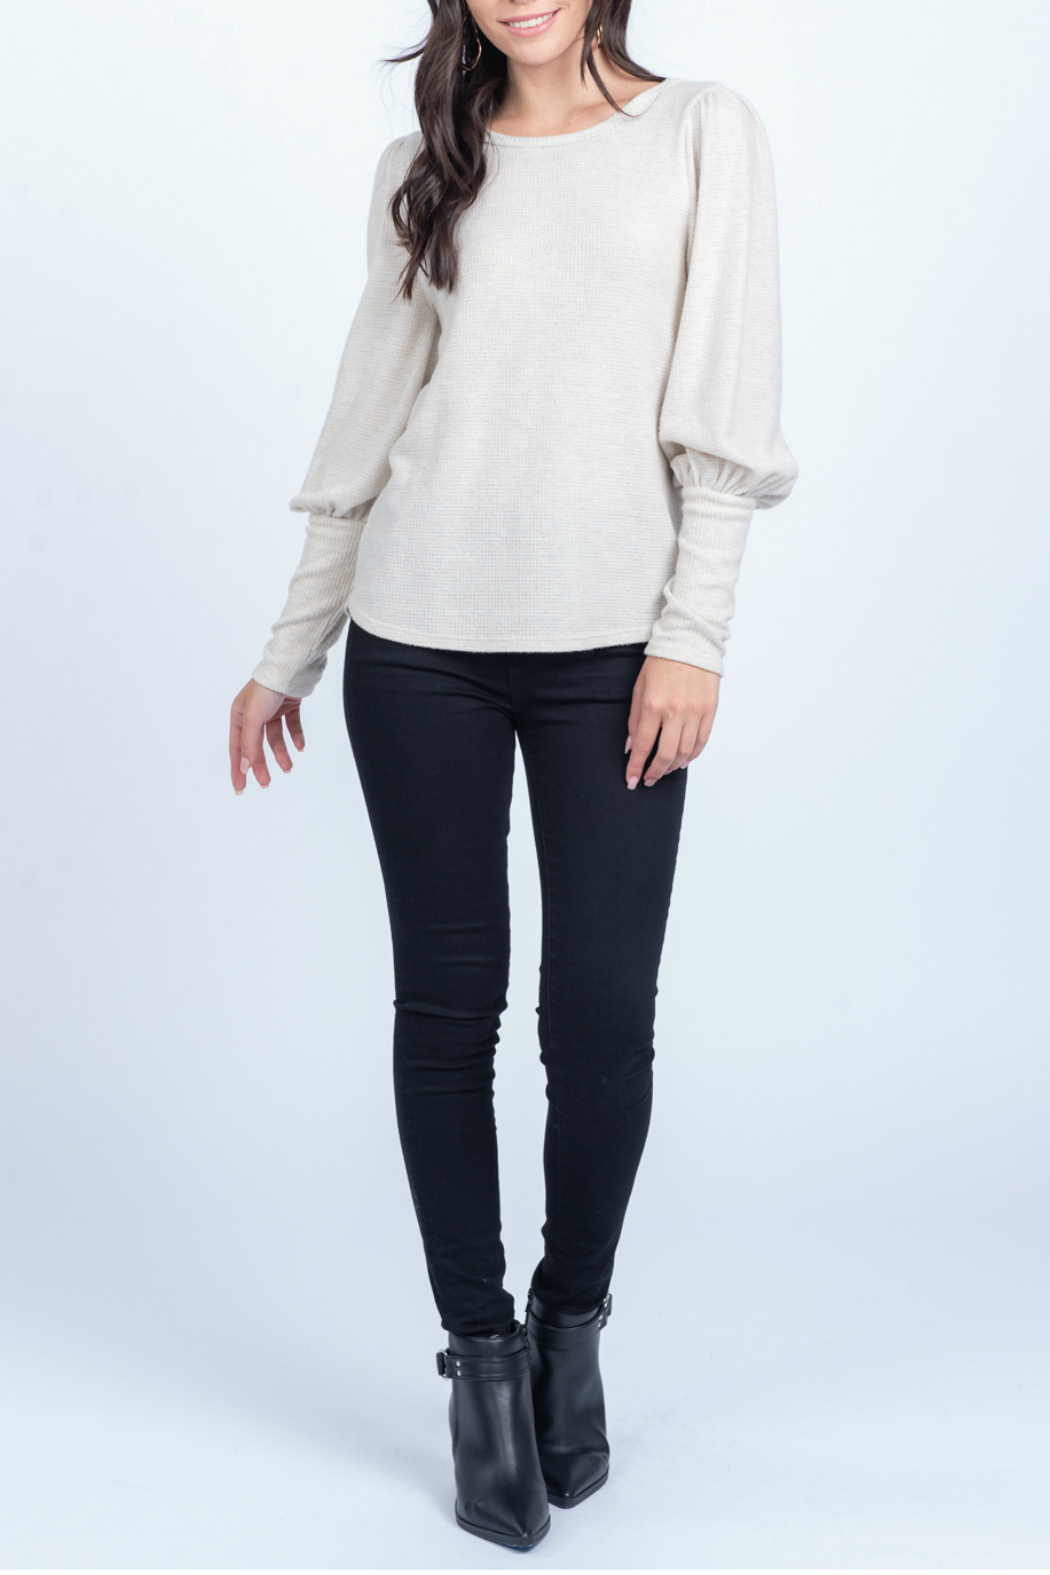 Everly Knit top with cuff detail - Main Image